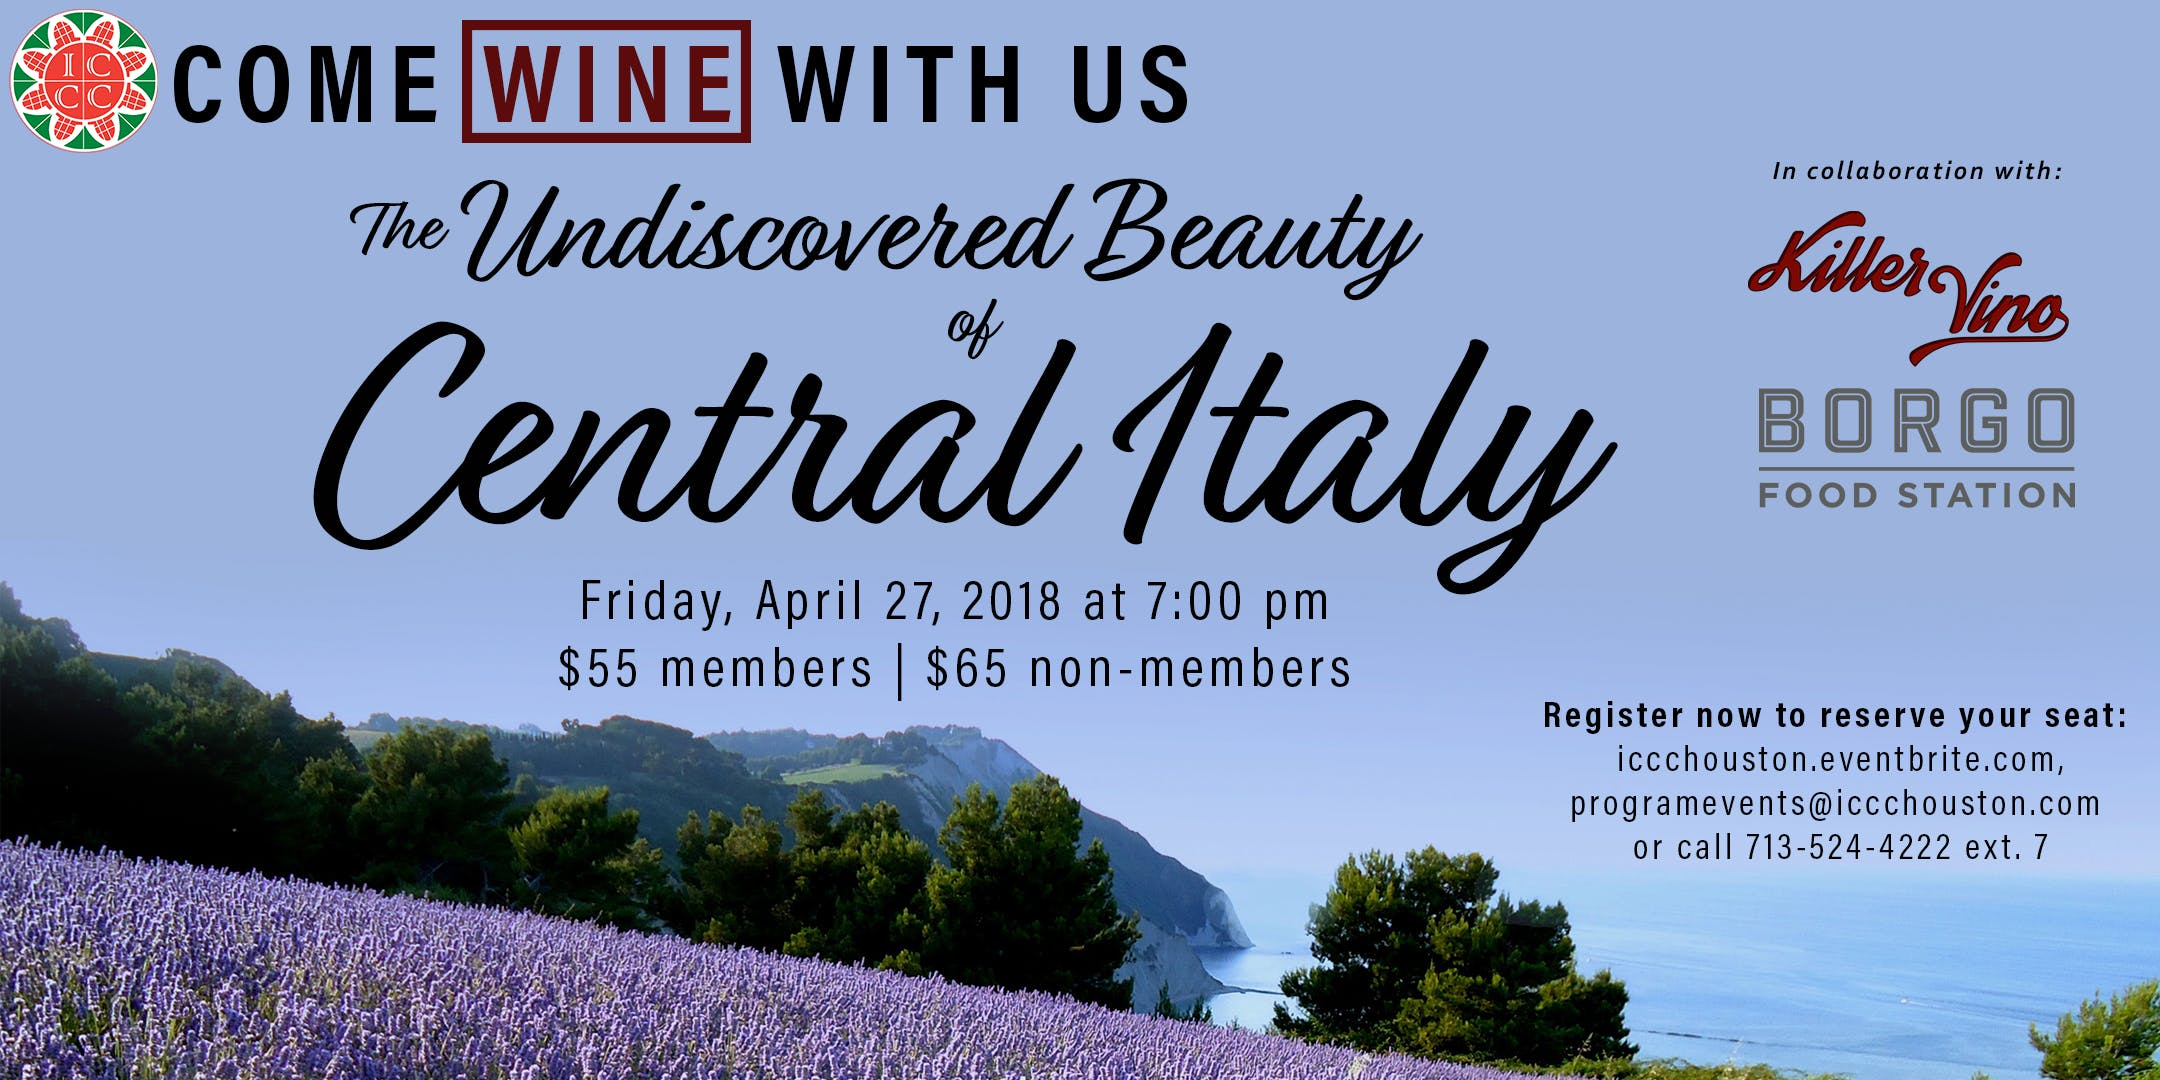 Come Wine With Us The Undiscovered Beauty of Central Italy